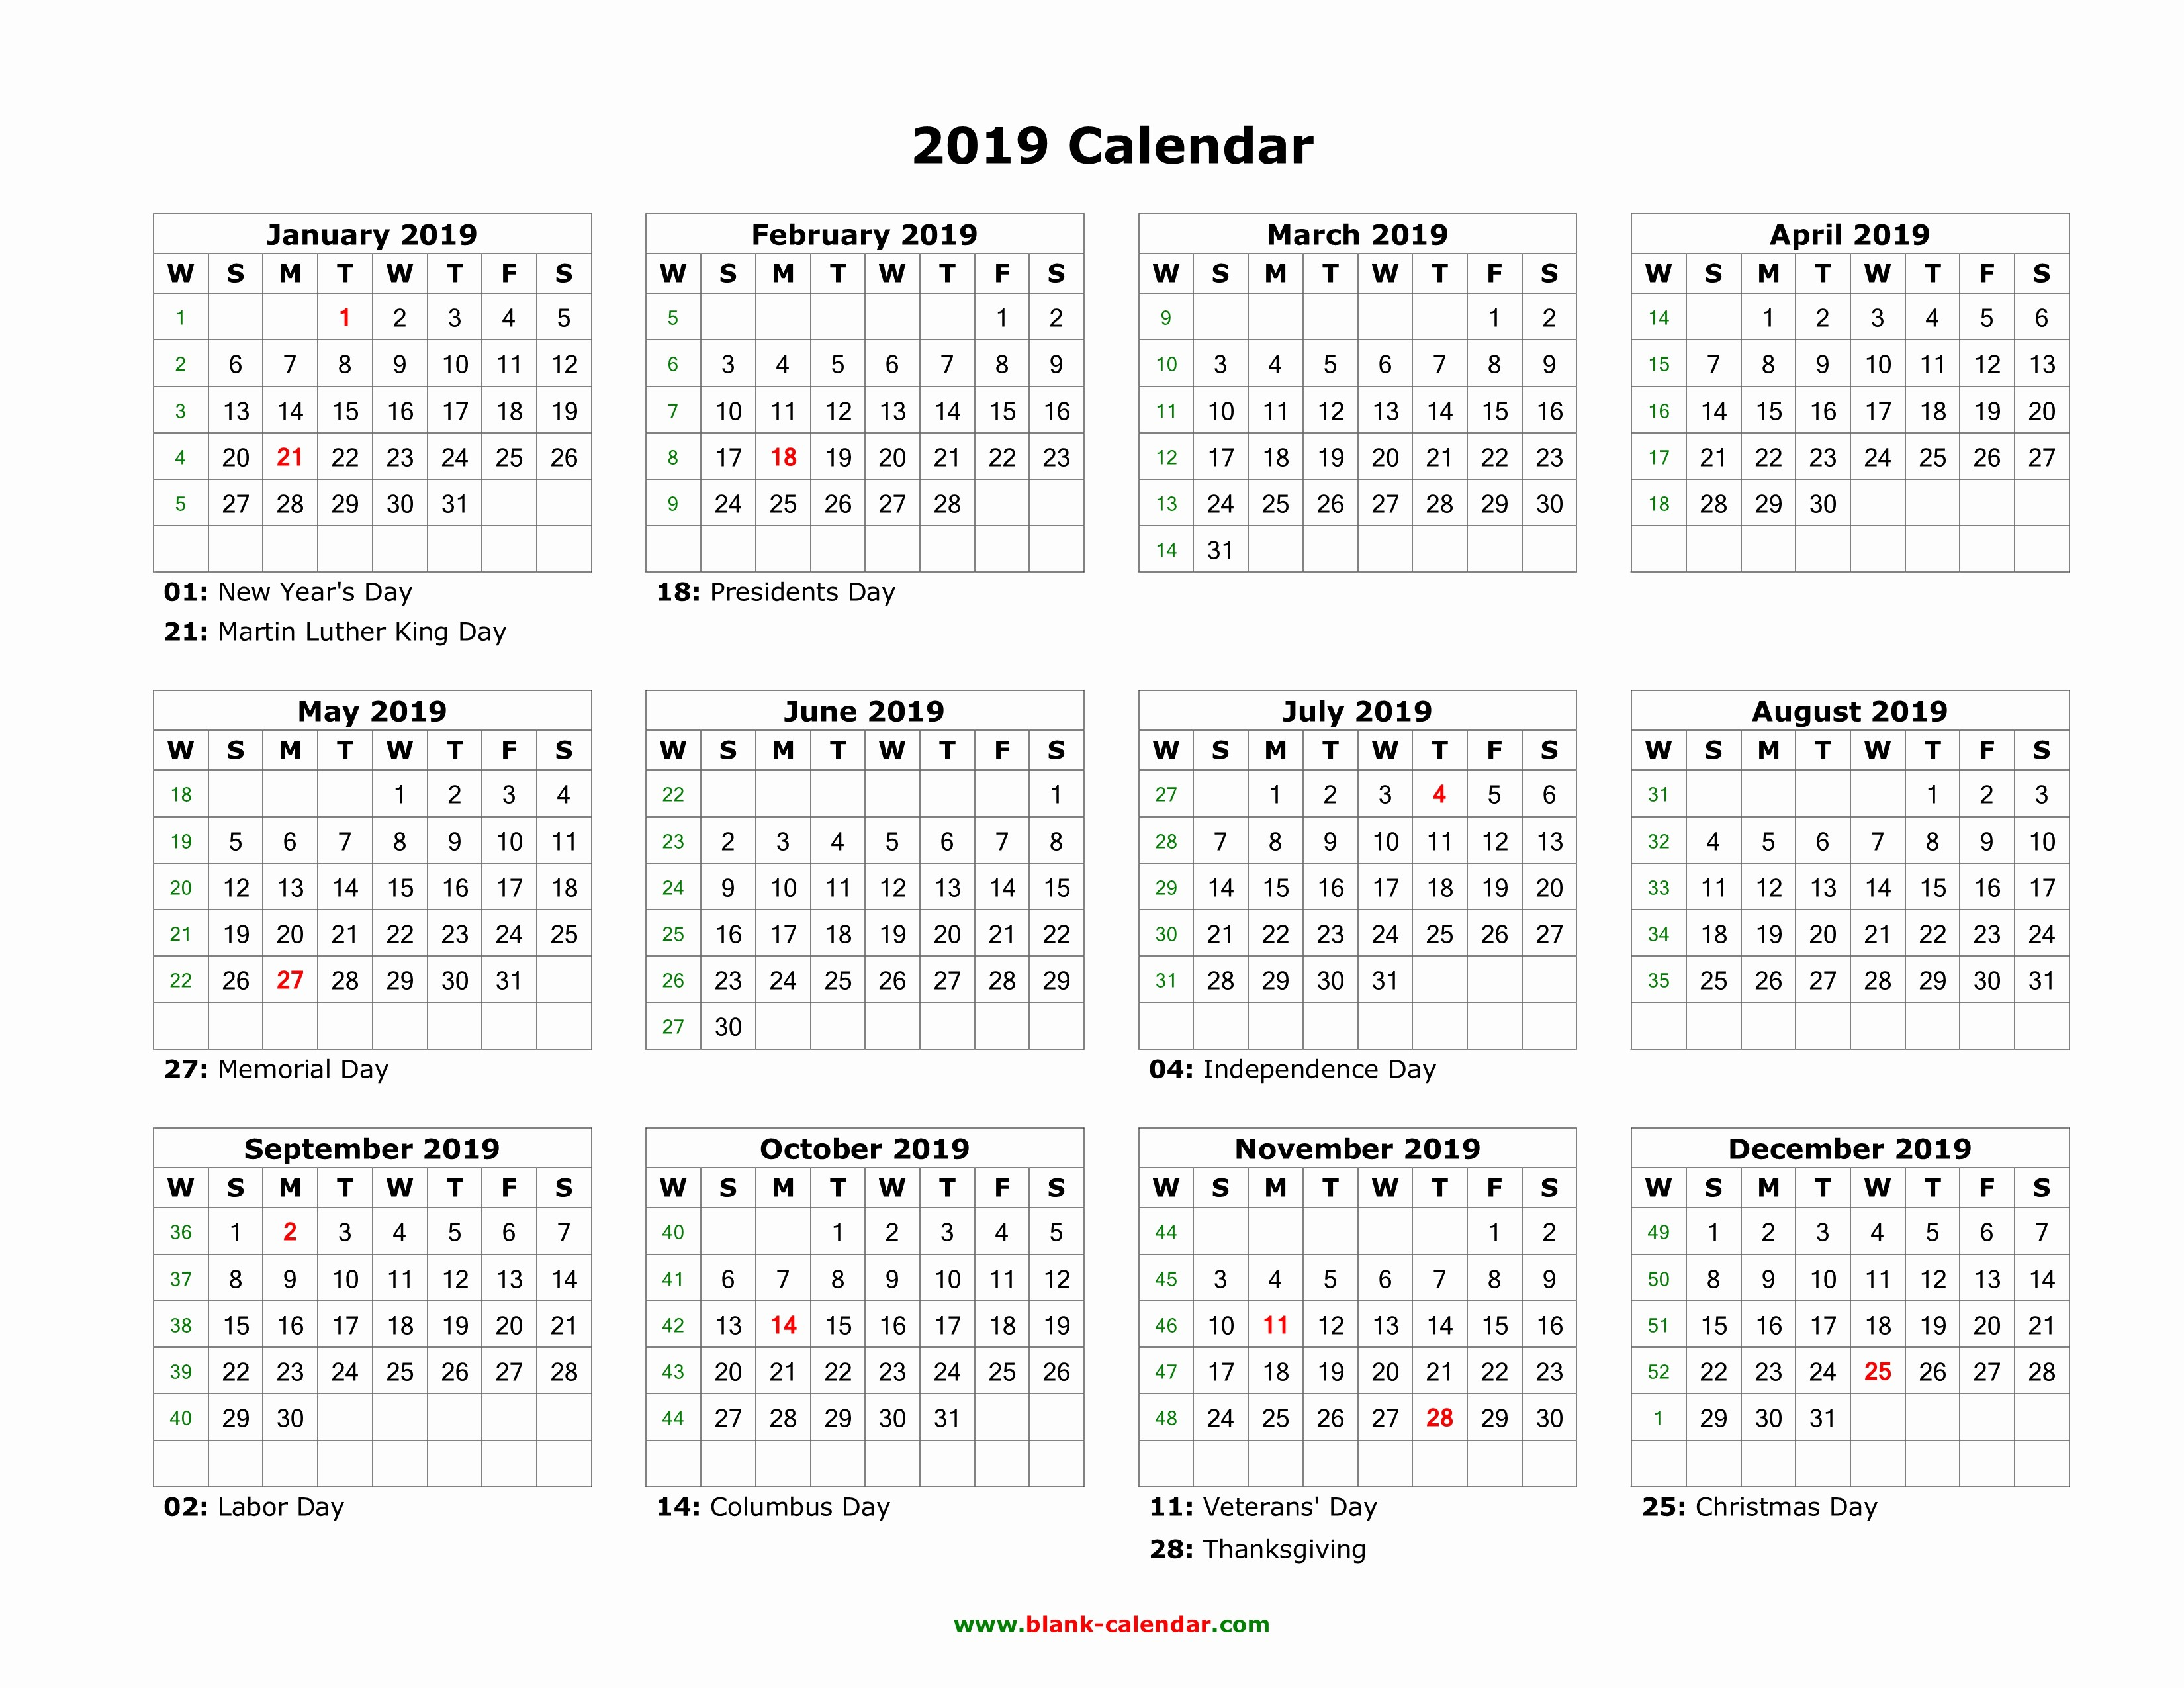 2019 Yearly Calendar One Page Elegant Download Blank Calendar 2019 with Us Holidays 12 Months